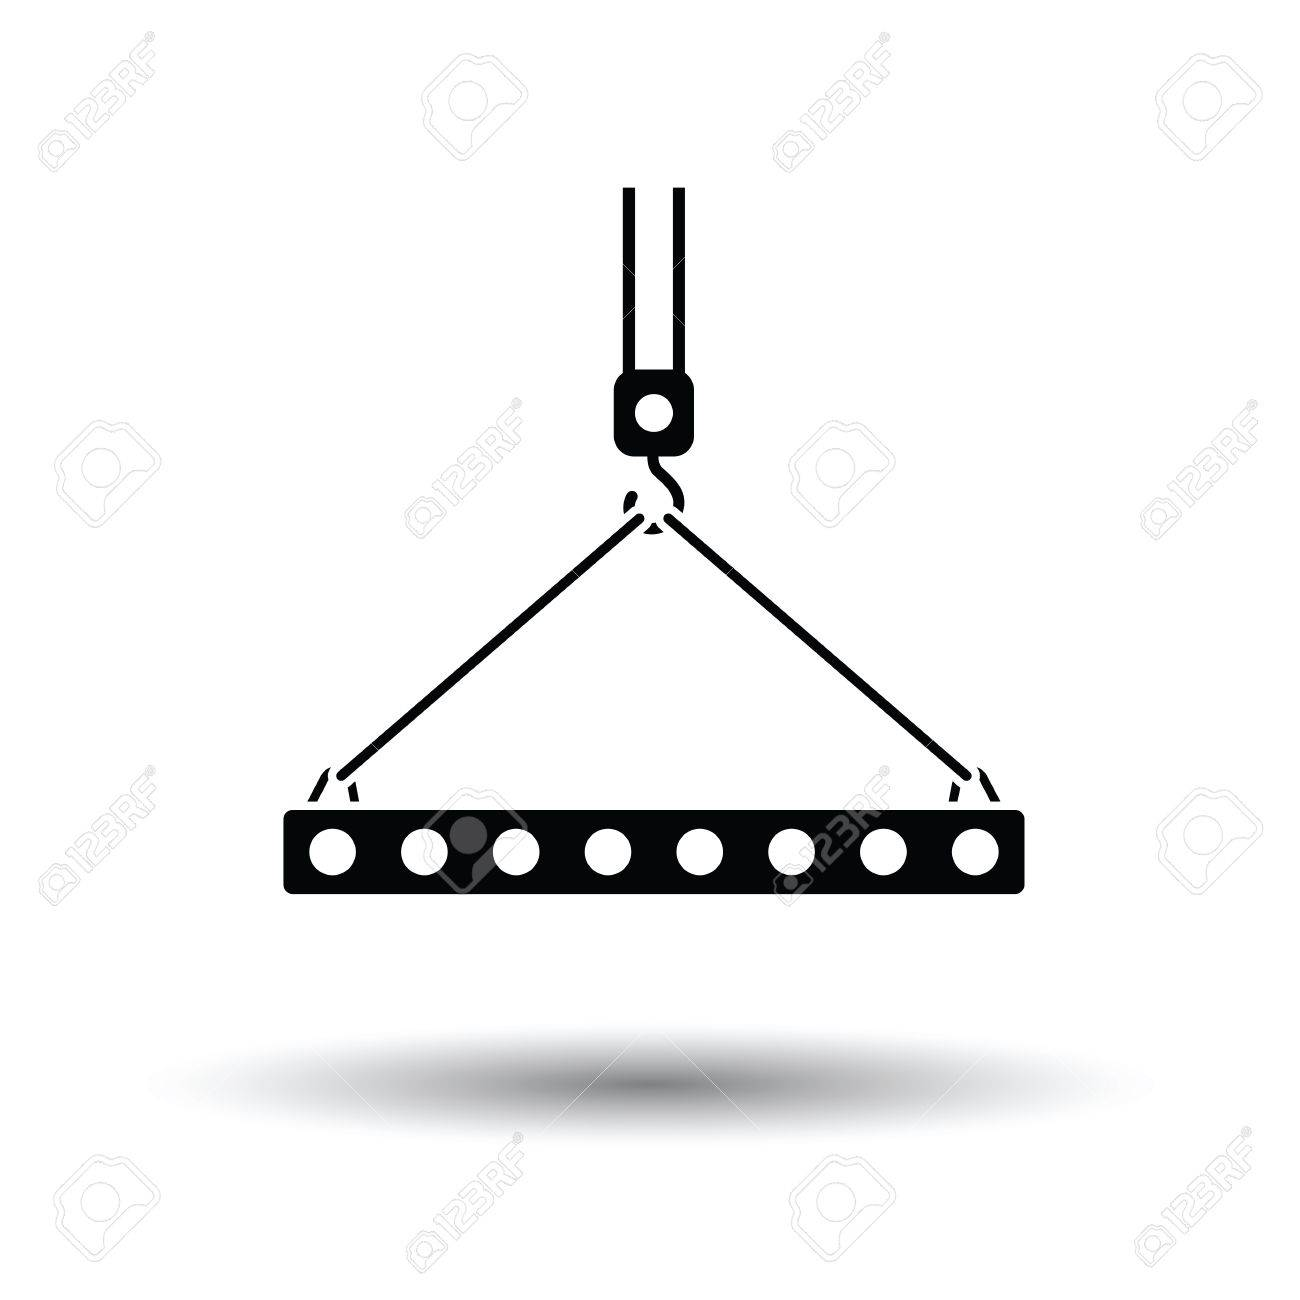 93 thin slab stock vector illustration and royalty free thin slab icon of slab hanged on crane hook by rope slings white background with shadow design publicscrutiny Images